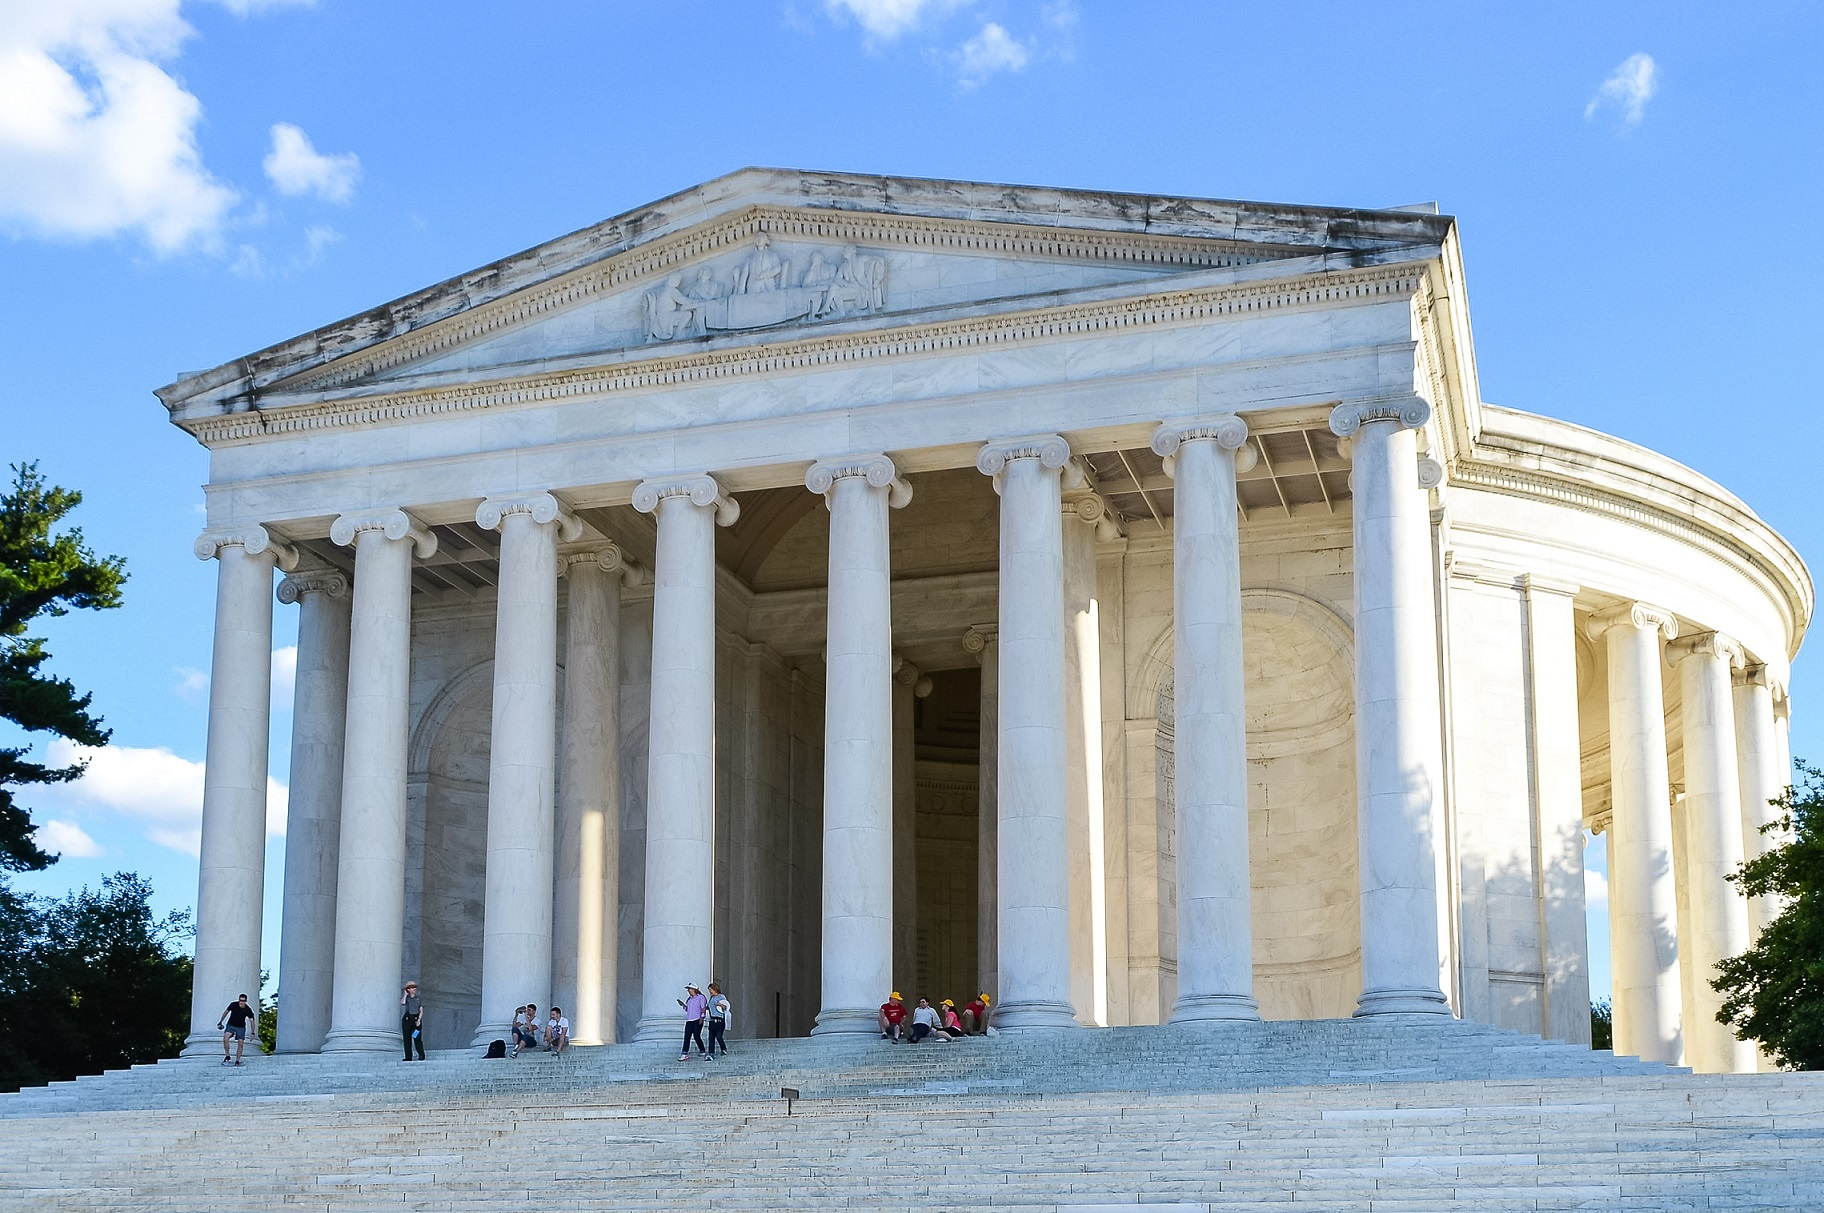 Visiting the Thomas Jefferson Memorial in Washington DC ...